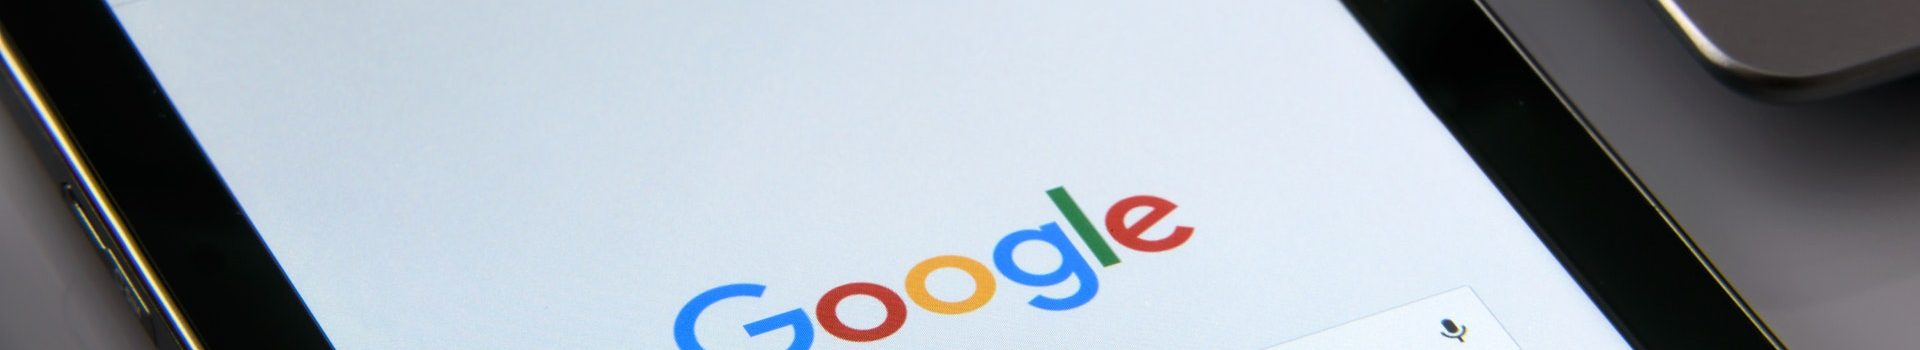 Google launches mobile first indexing for all websites